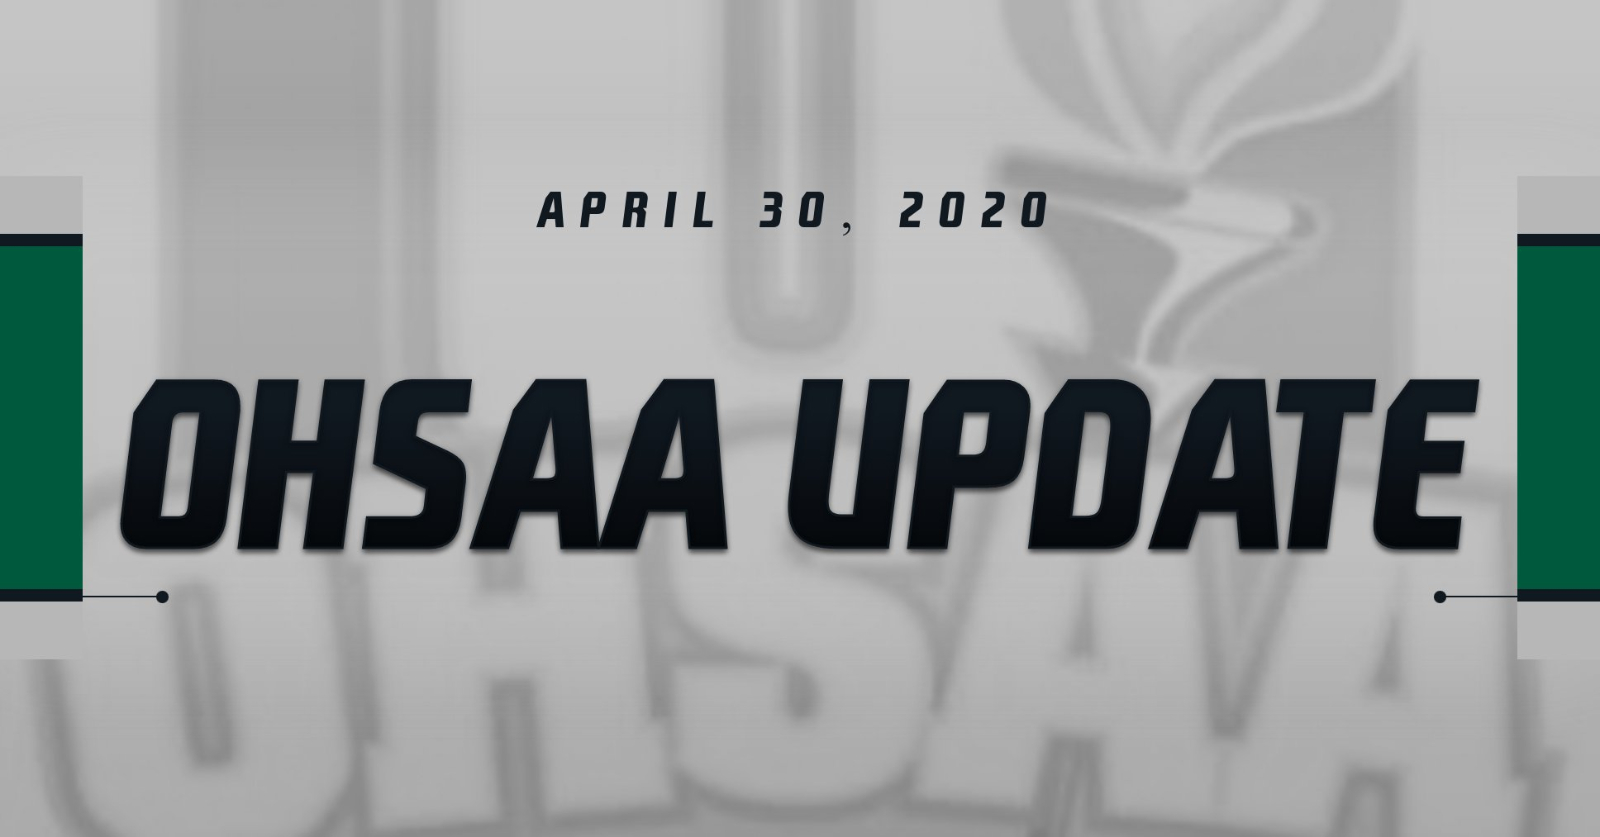 OHSAA Update: April 30, 2020